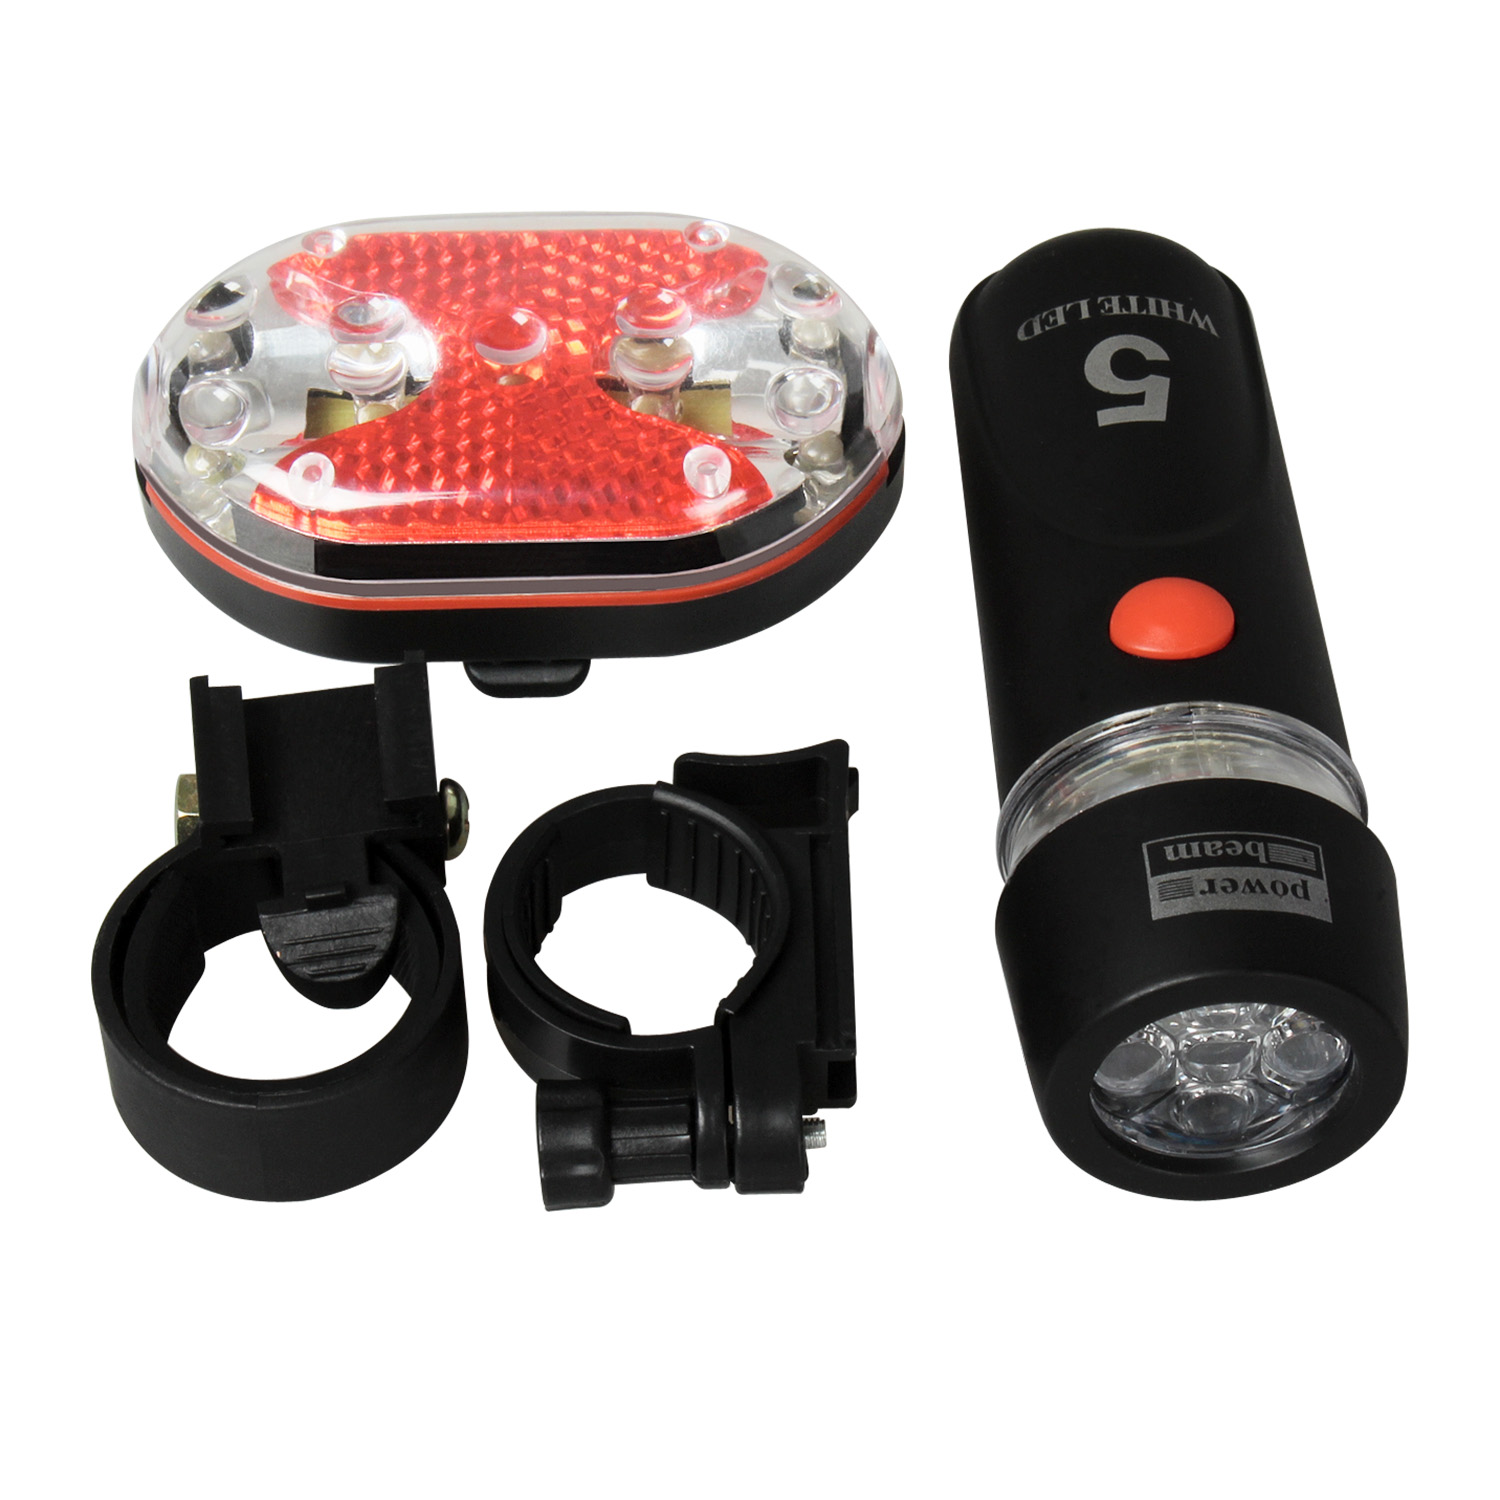 Details about  /Ascher Ultra Bright USB Rechargeable Bike Light Set Powerful Bicycle Front Head